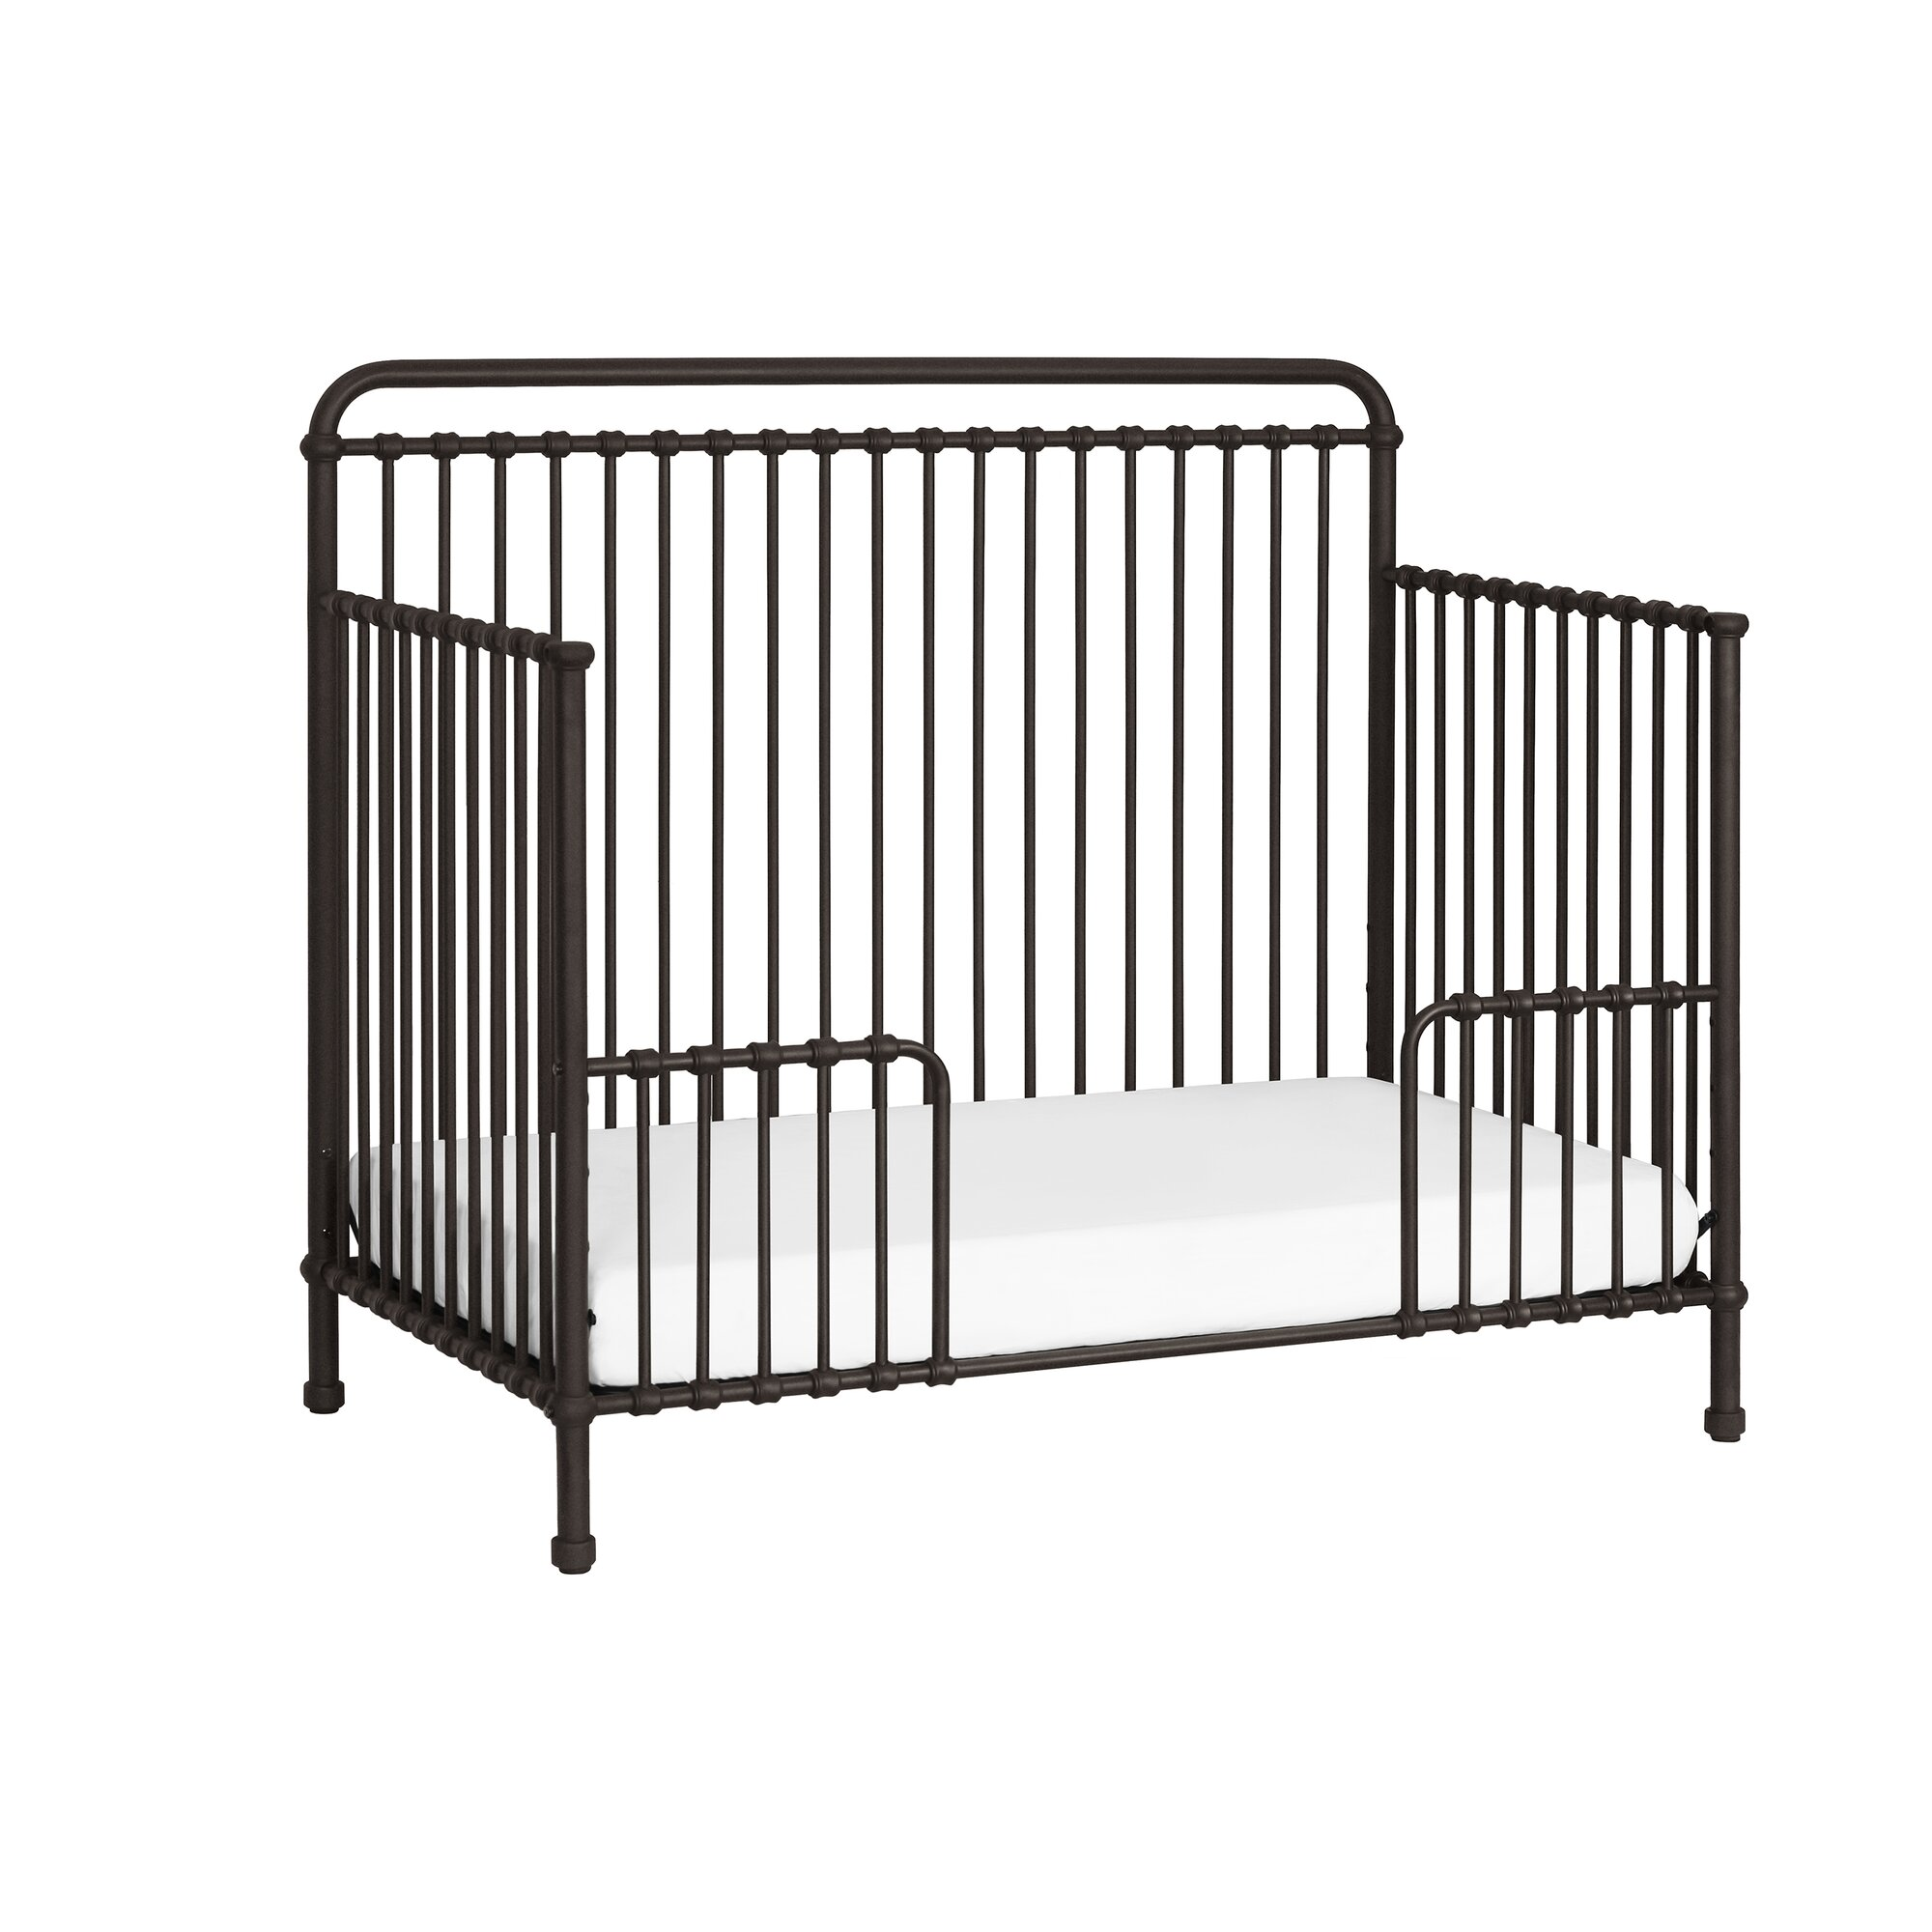 Franklin and Ben Winston 4 in 1 Convertible Crib &amp Reviews Wayfair - Dog Decorations For Home